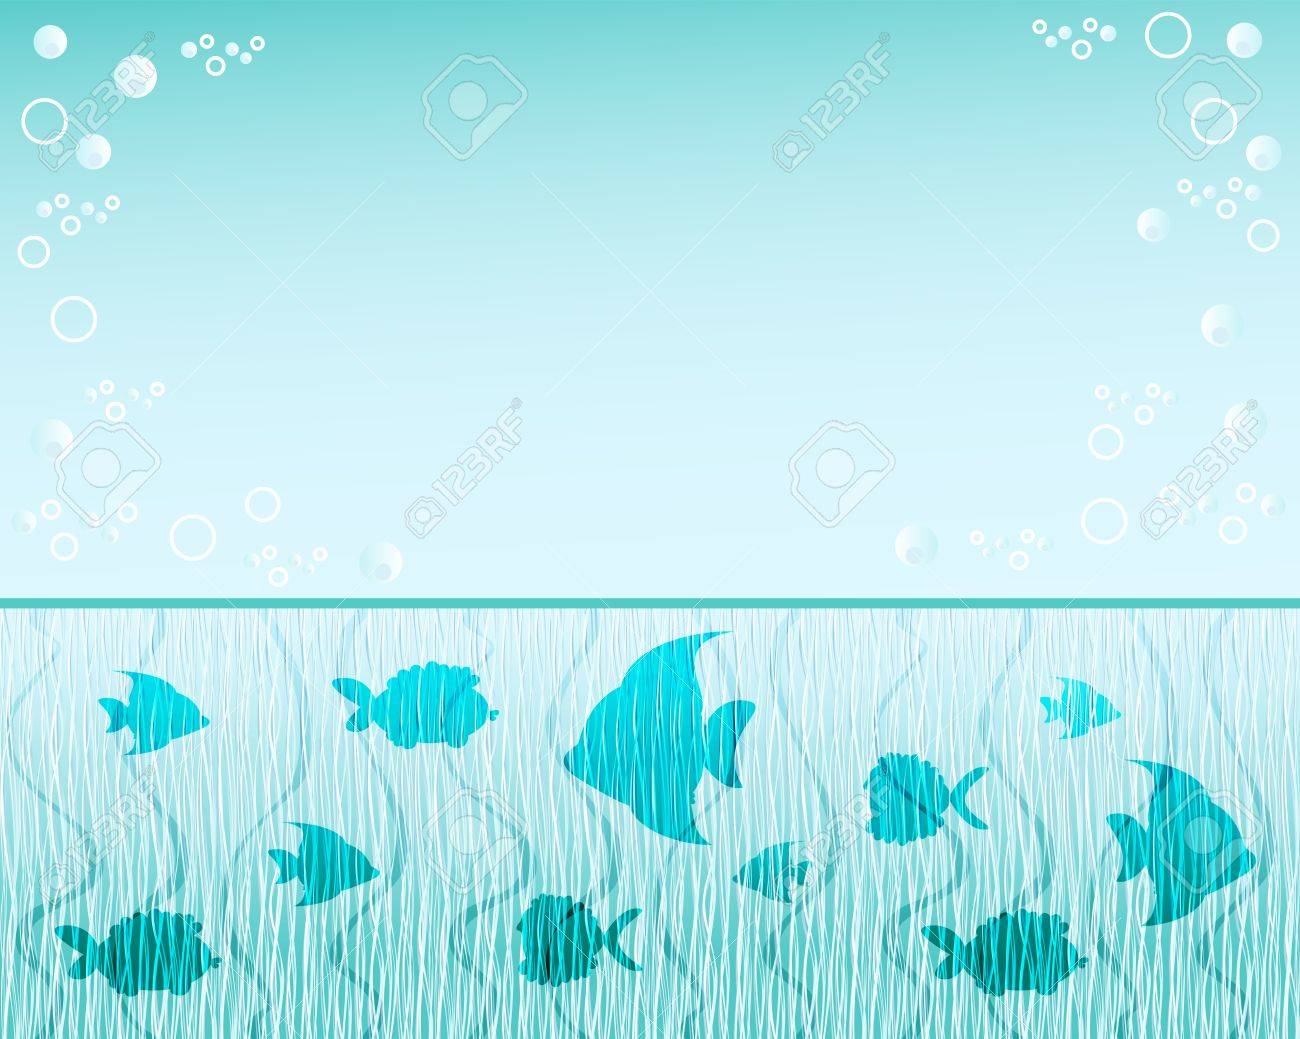 Fish Background Blue Water Vector Illustration Royalty Free ...